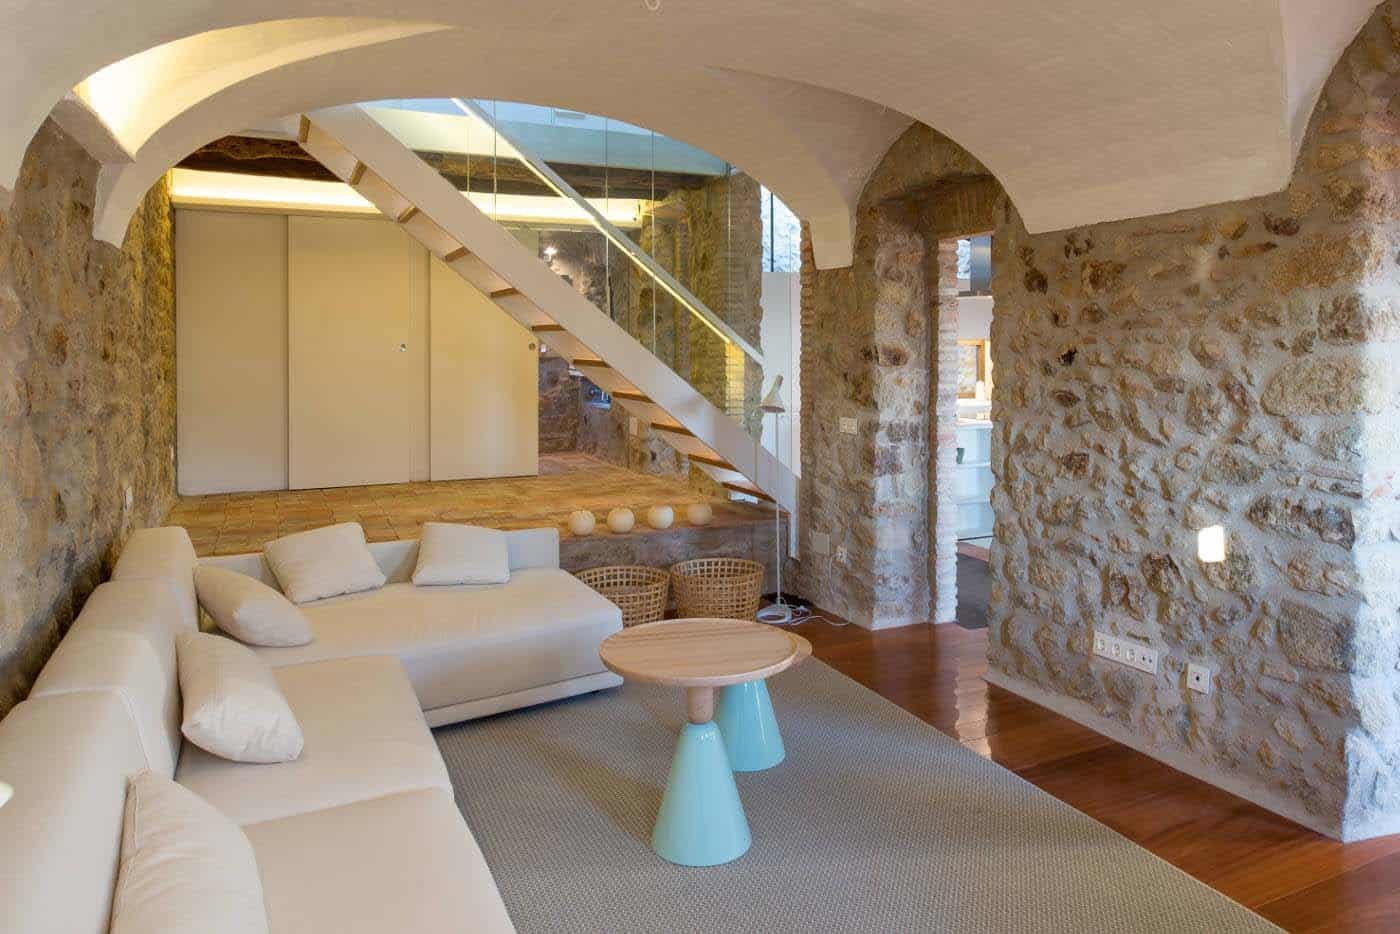 Historic Stone Dwelling-Gloria Duran Torrellas-06-1 Kindesign